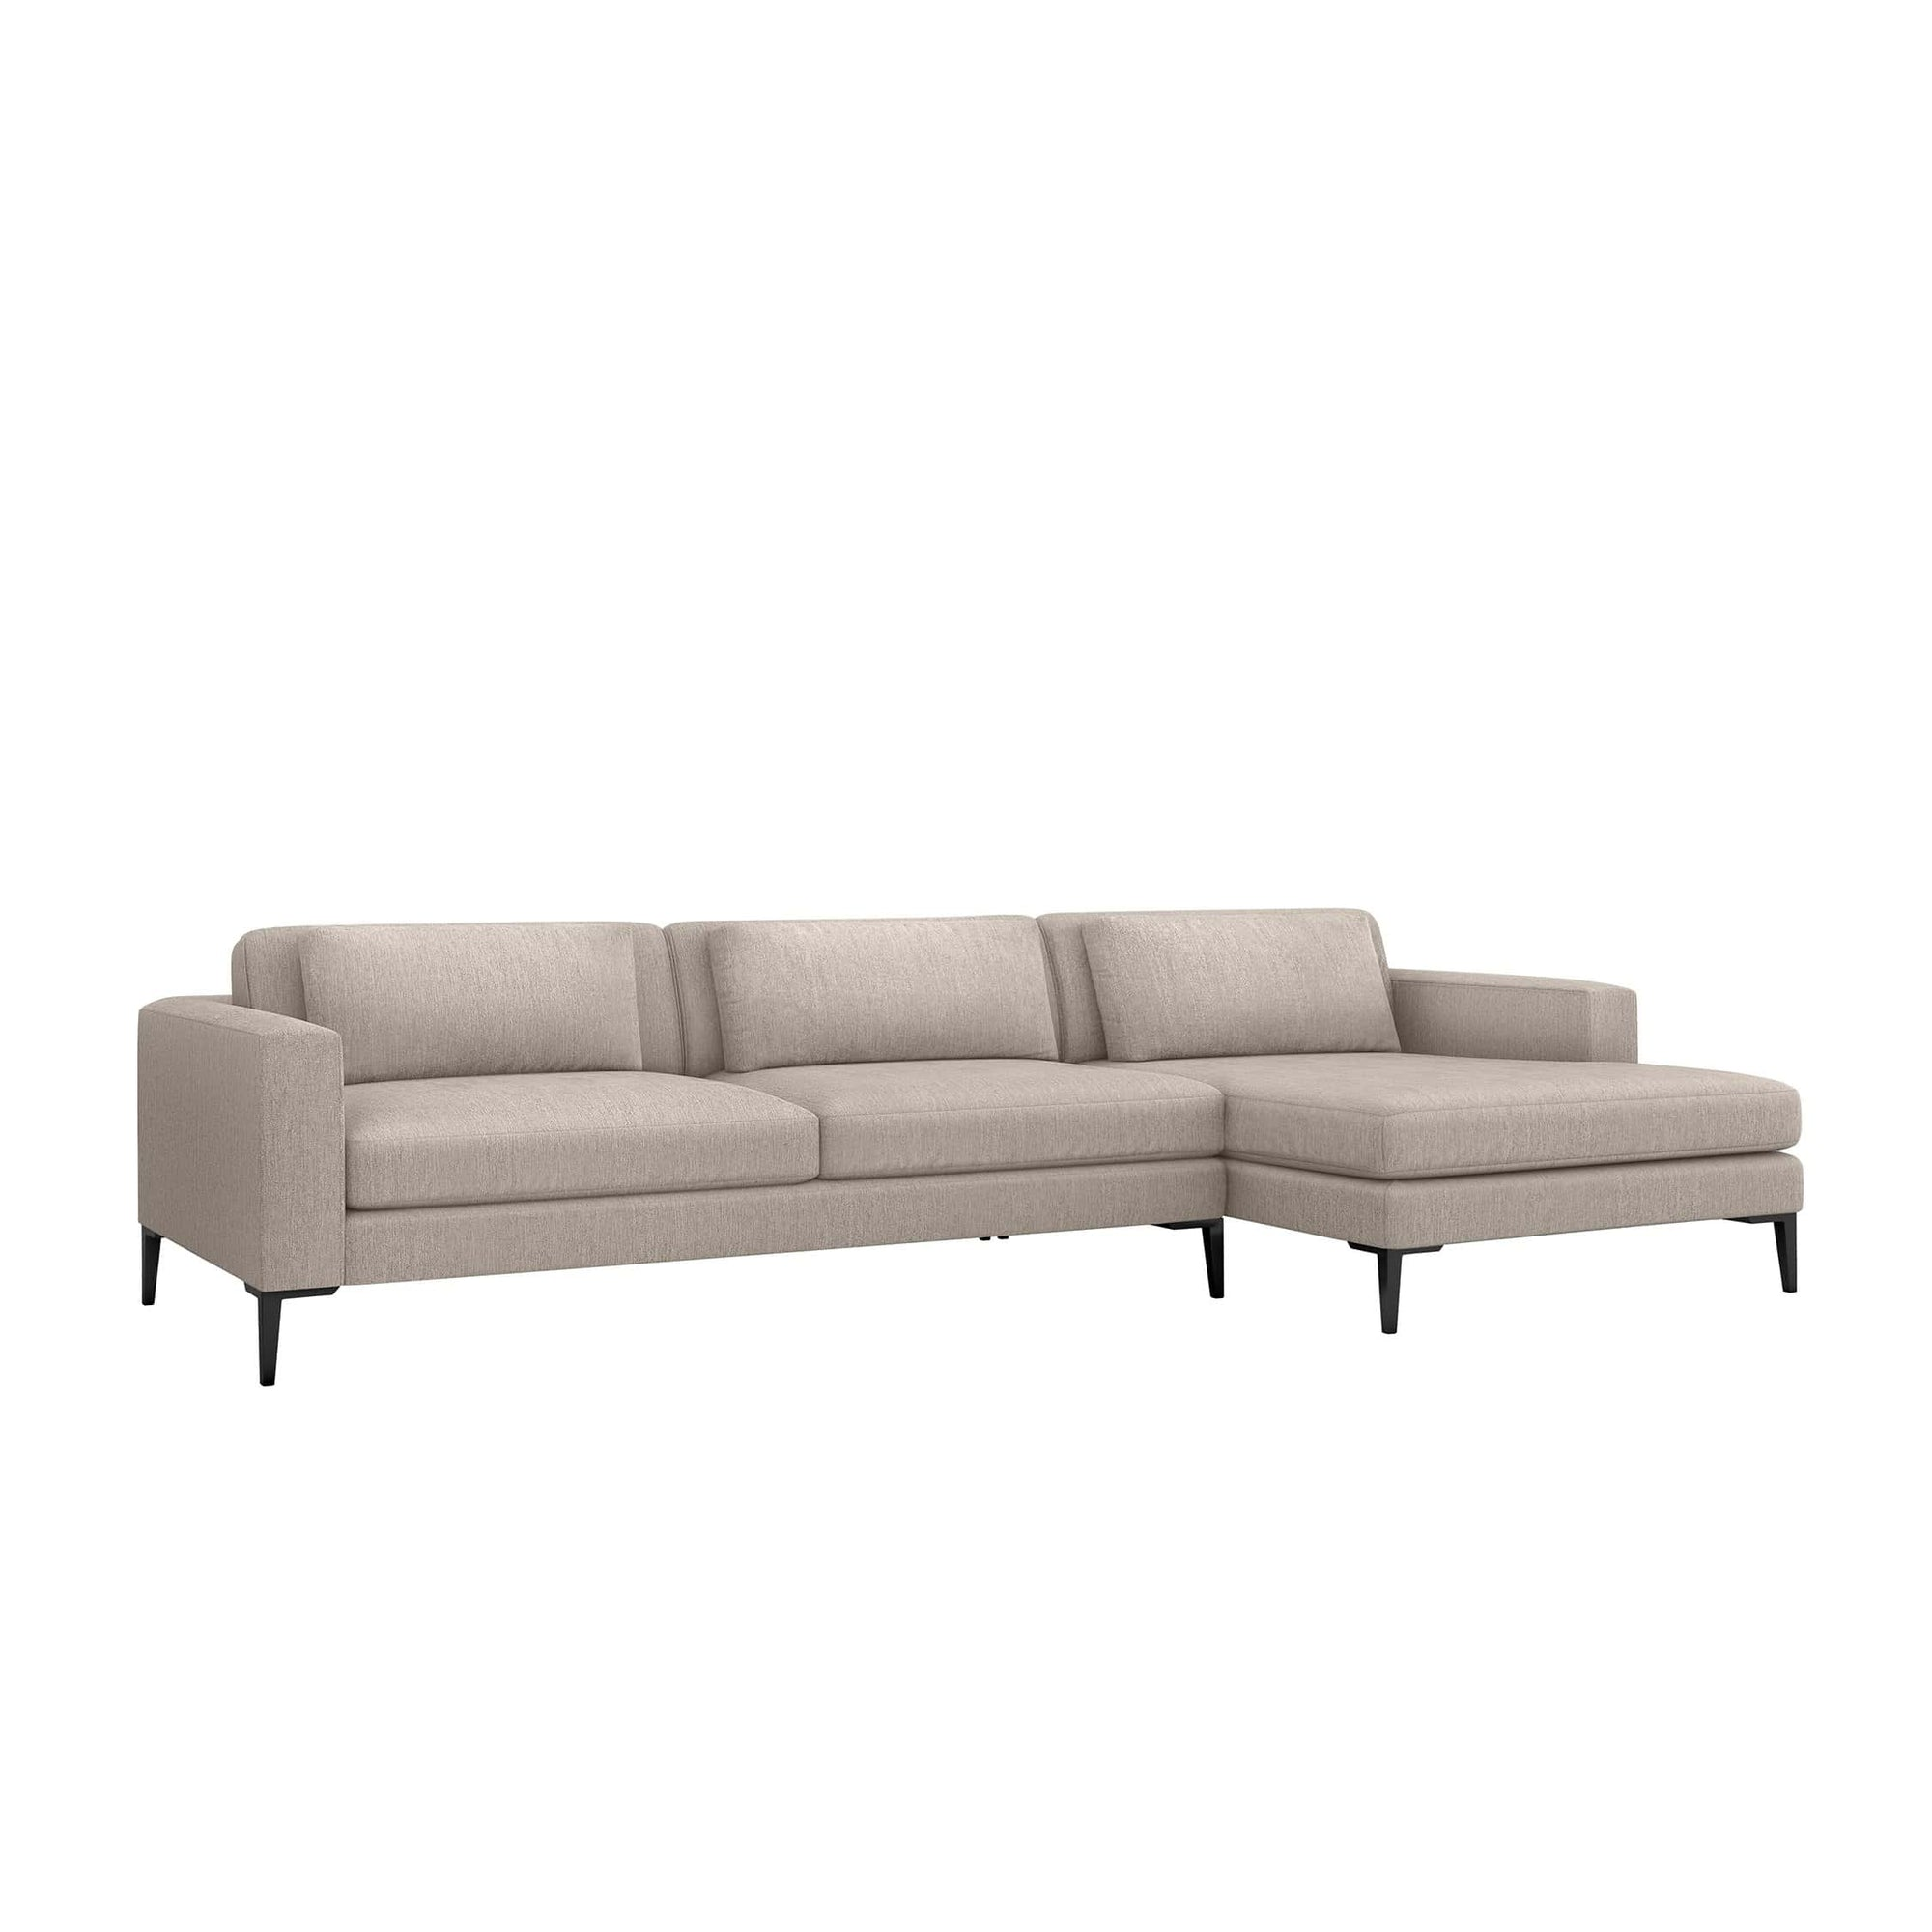 Interlude Home Interlude Home Izzy Right Chaise 2 Piece Sectional - Light Brown 199014-2